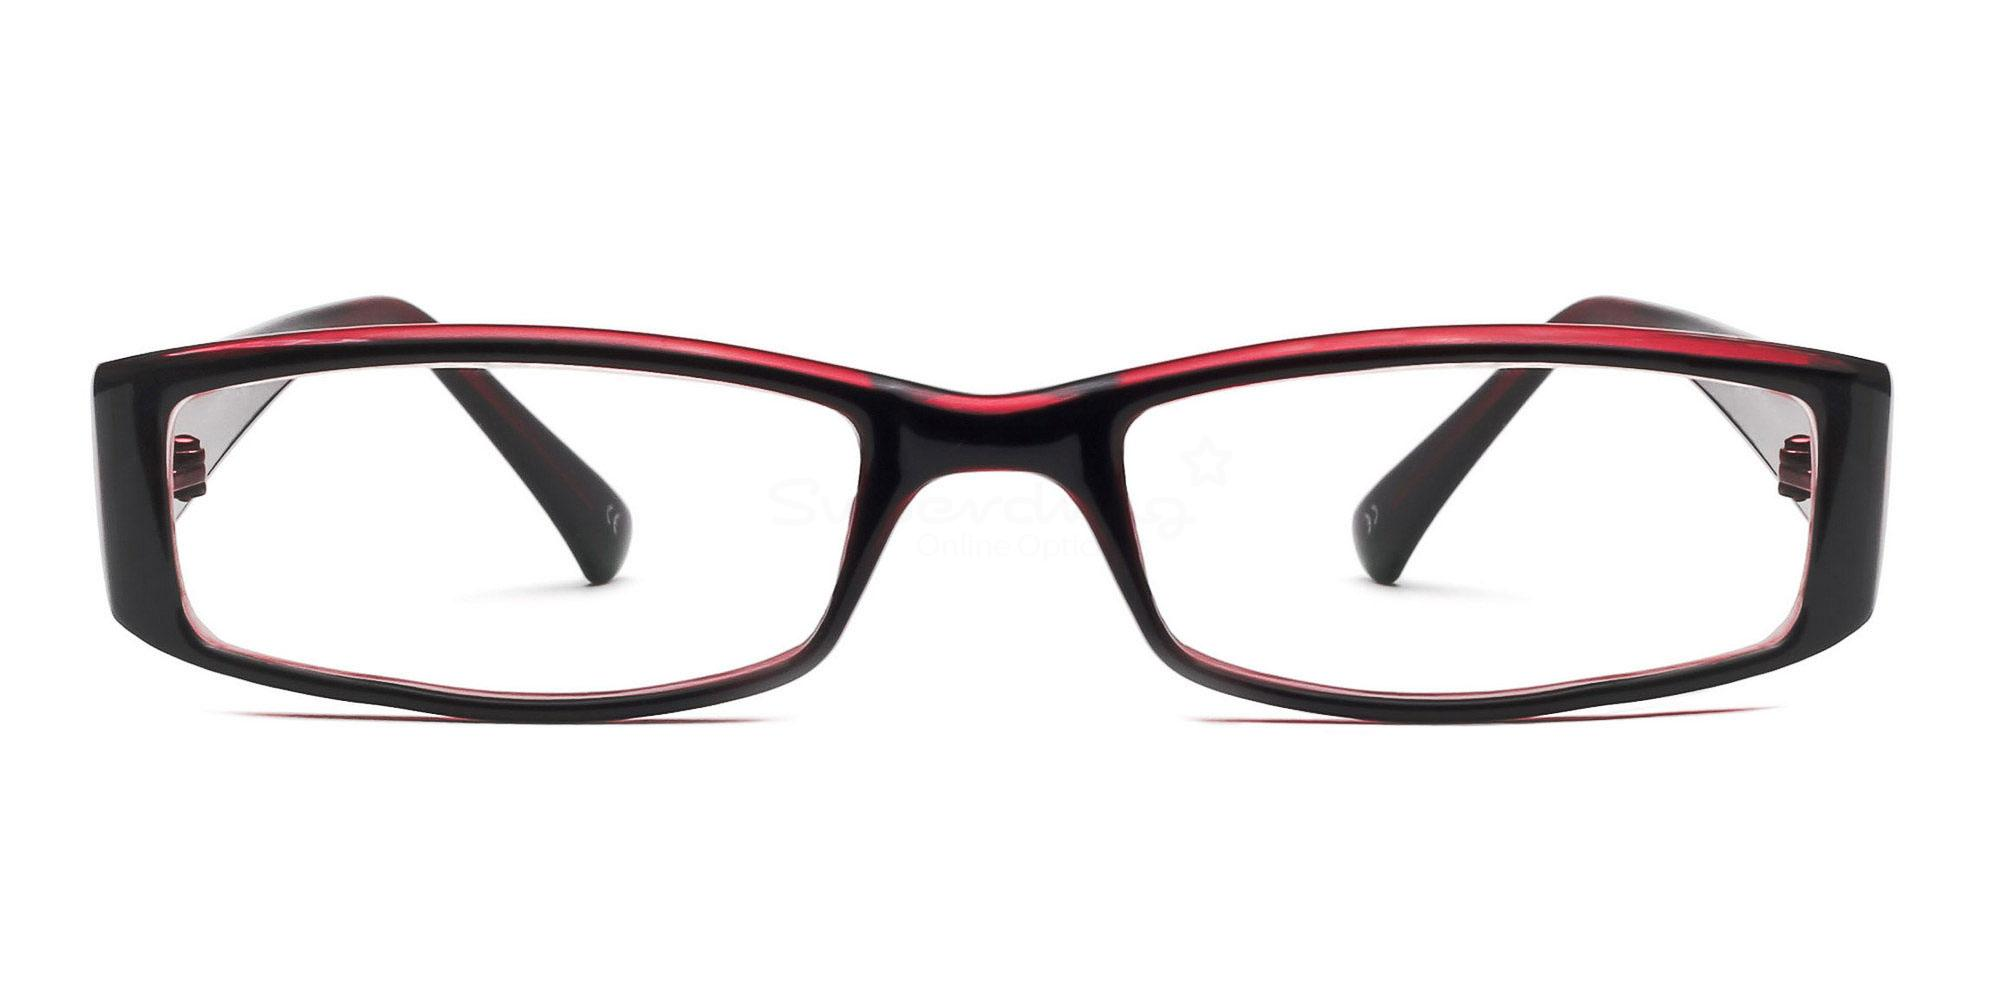 C38 P2251 - Black and Red Glasses, Helium